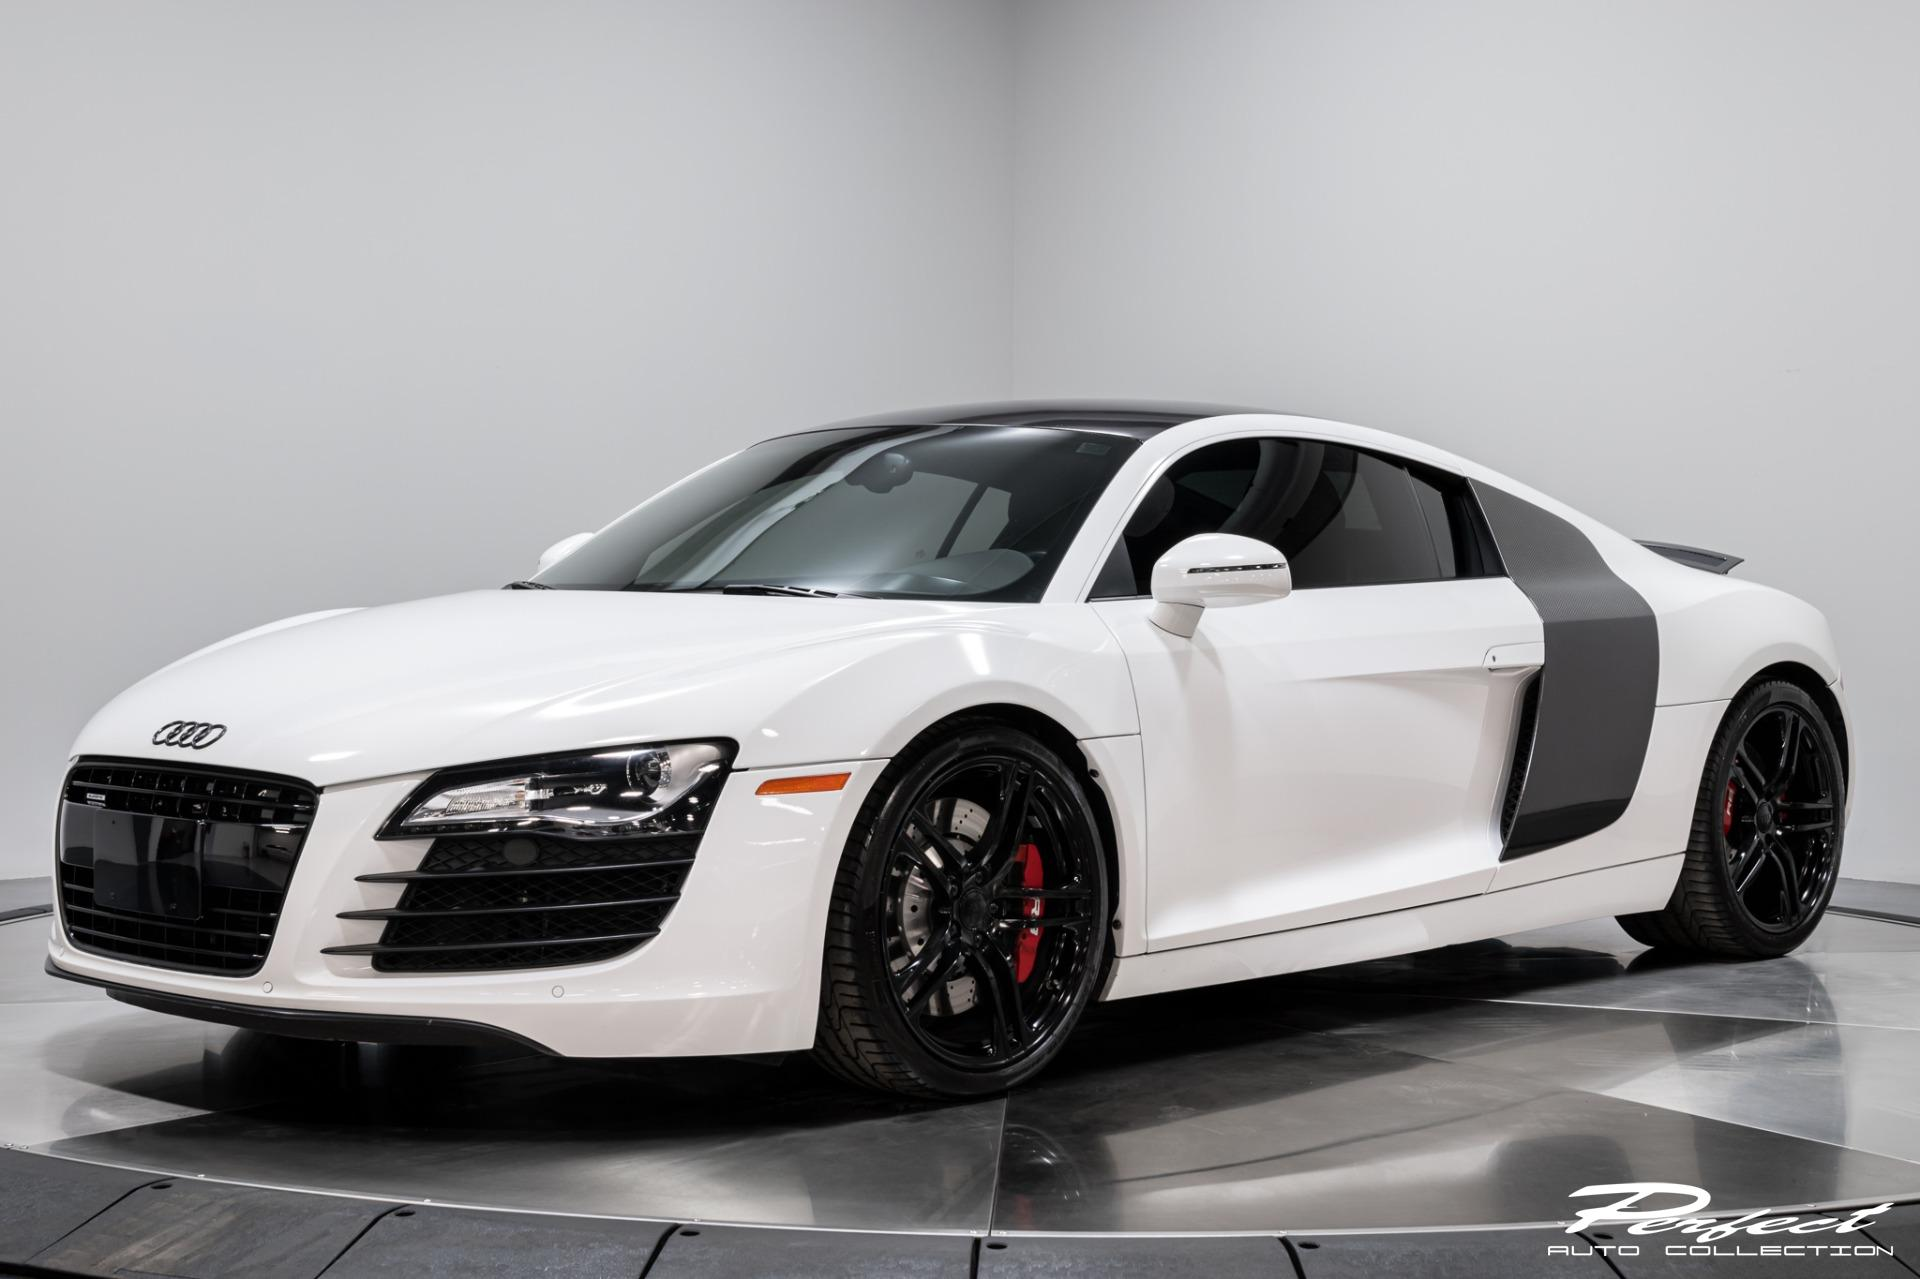 Used 2009 Audi R8 Quattro for sale Sold at Perfect Auto Collection in Akron OH 44310 1